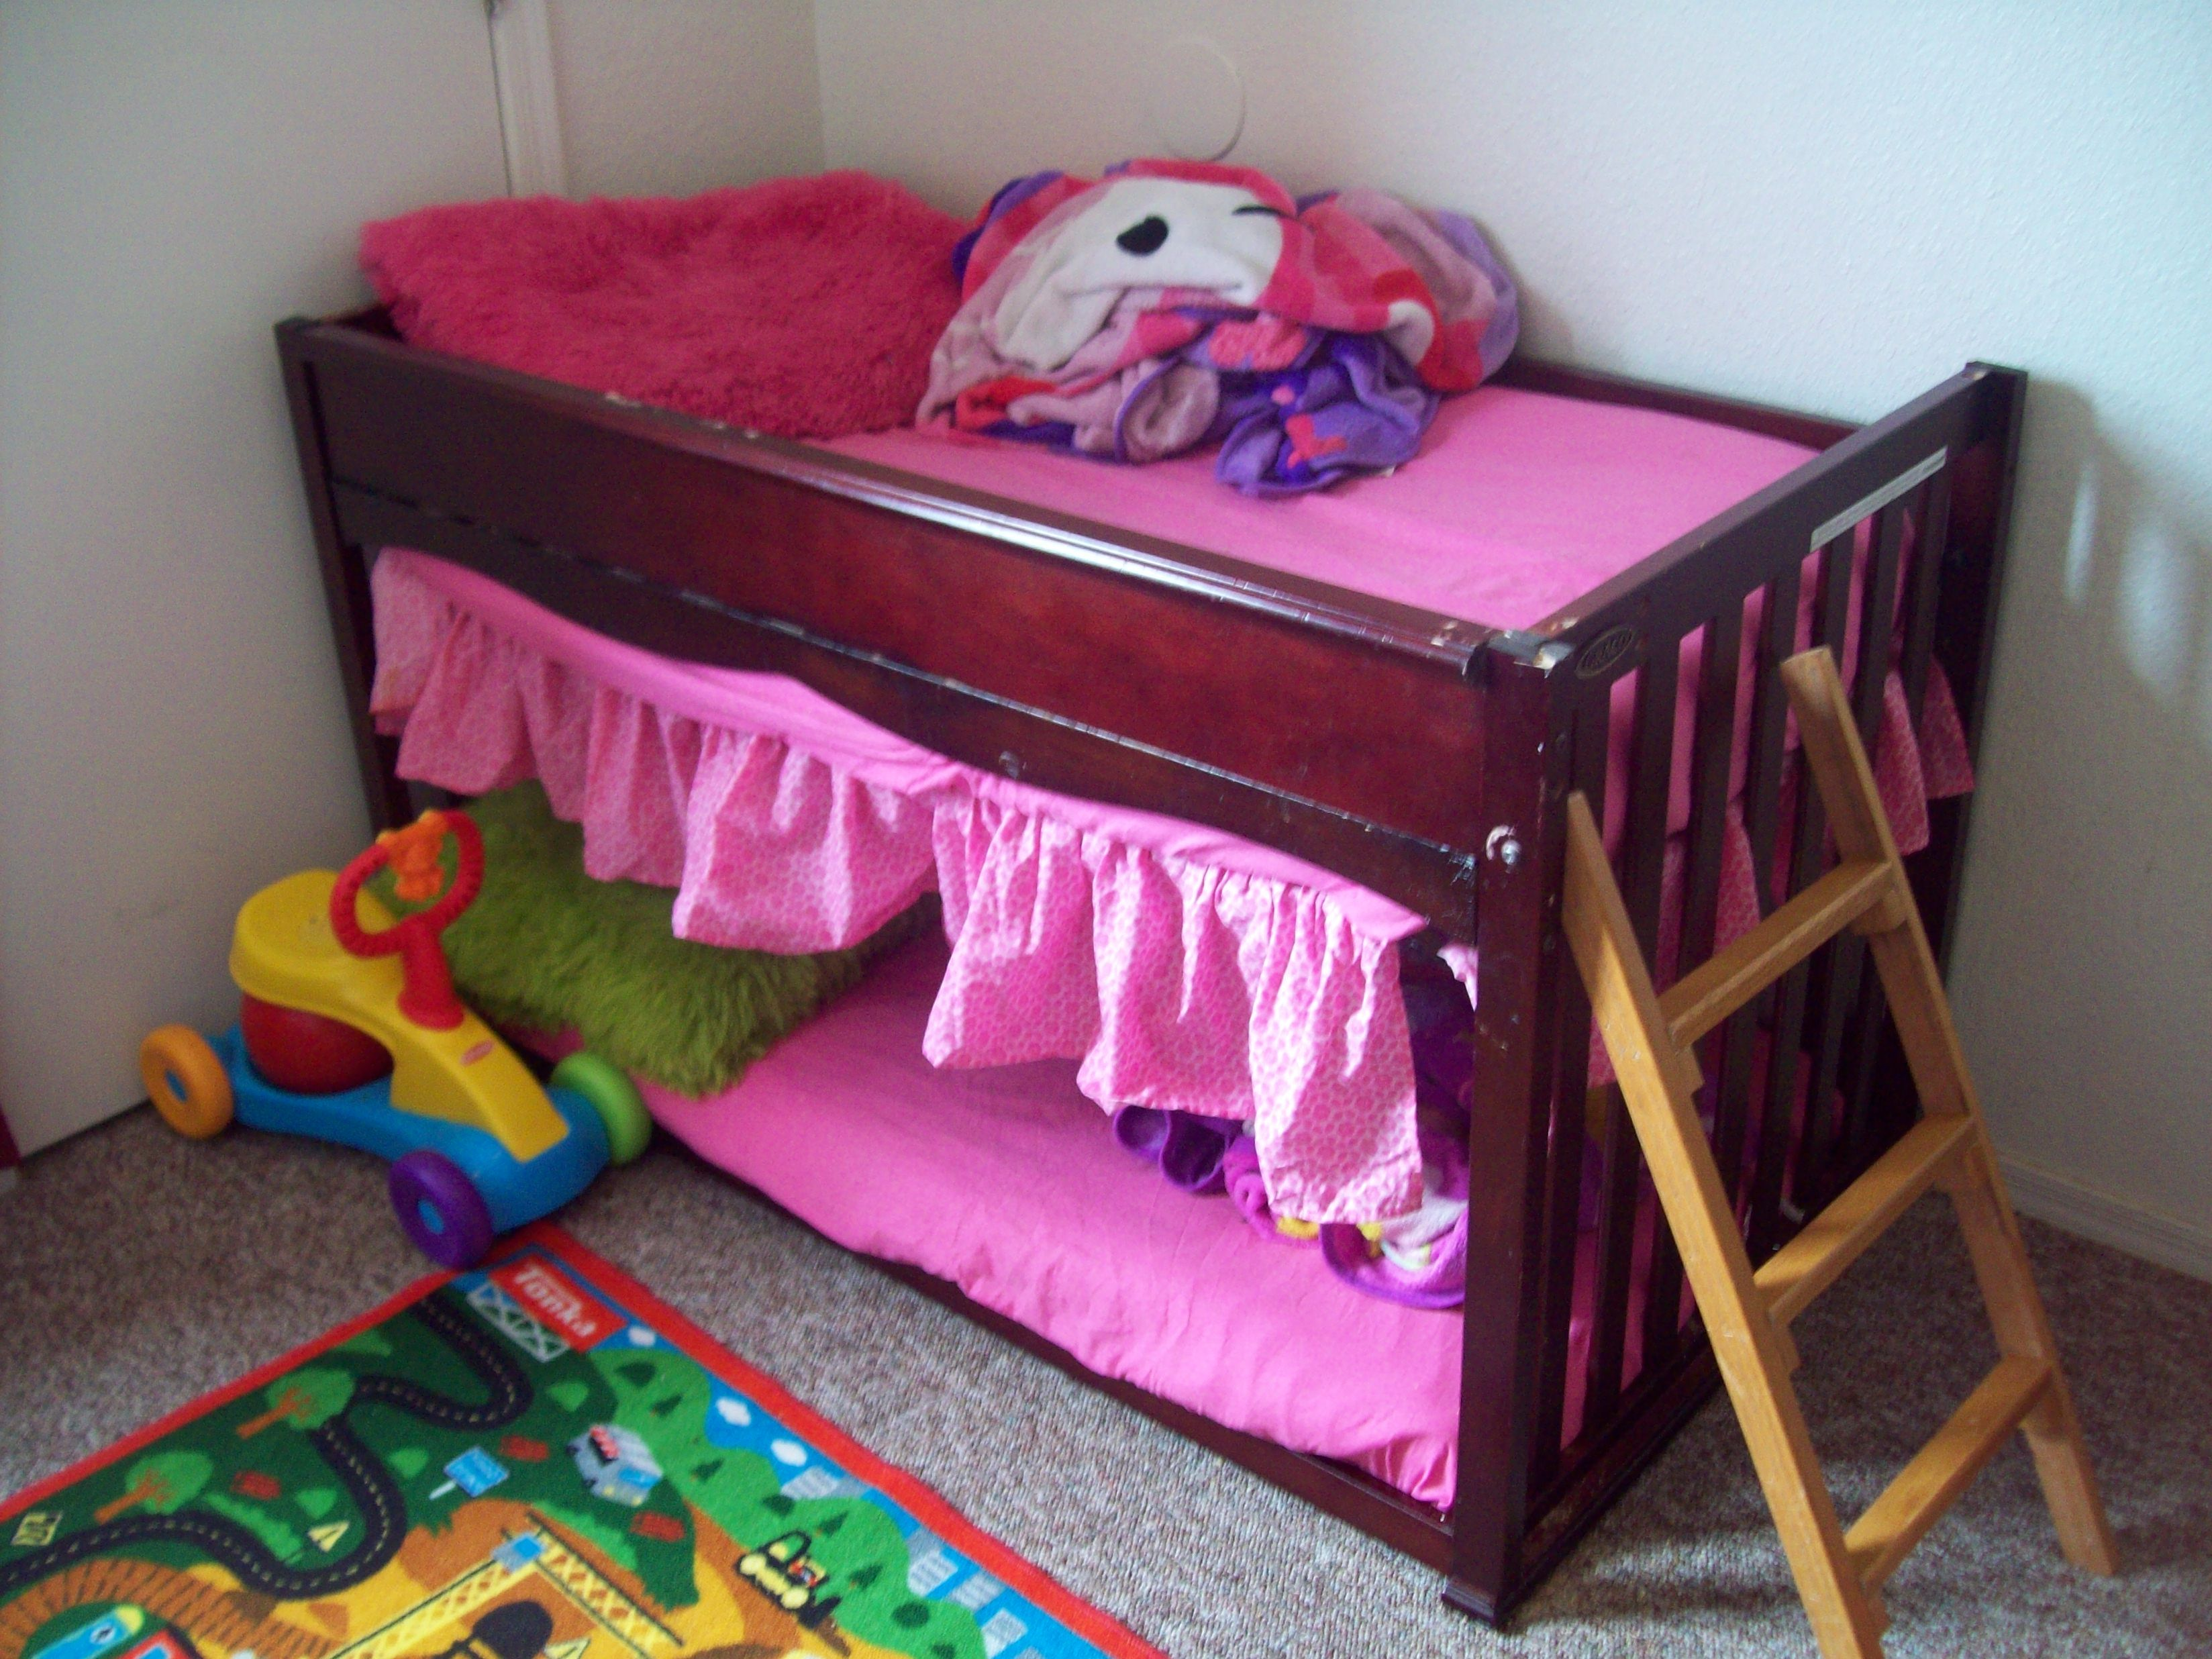 Baby crib youth bed - This Is A Upside Down Crib Turned Into A Toddler Bunk Bed